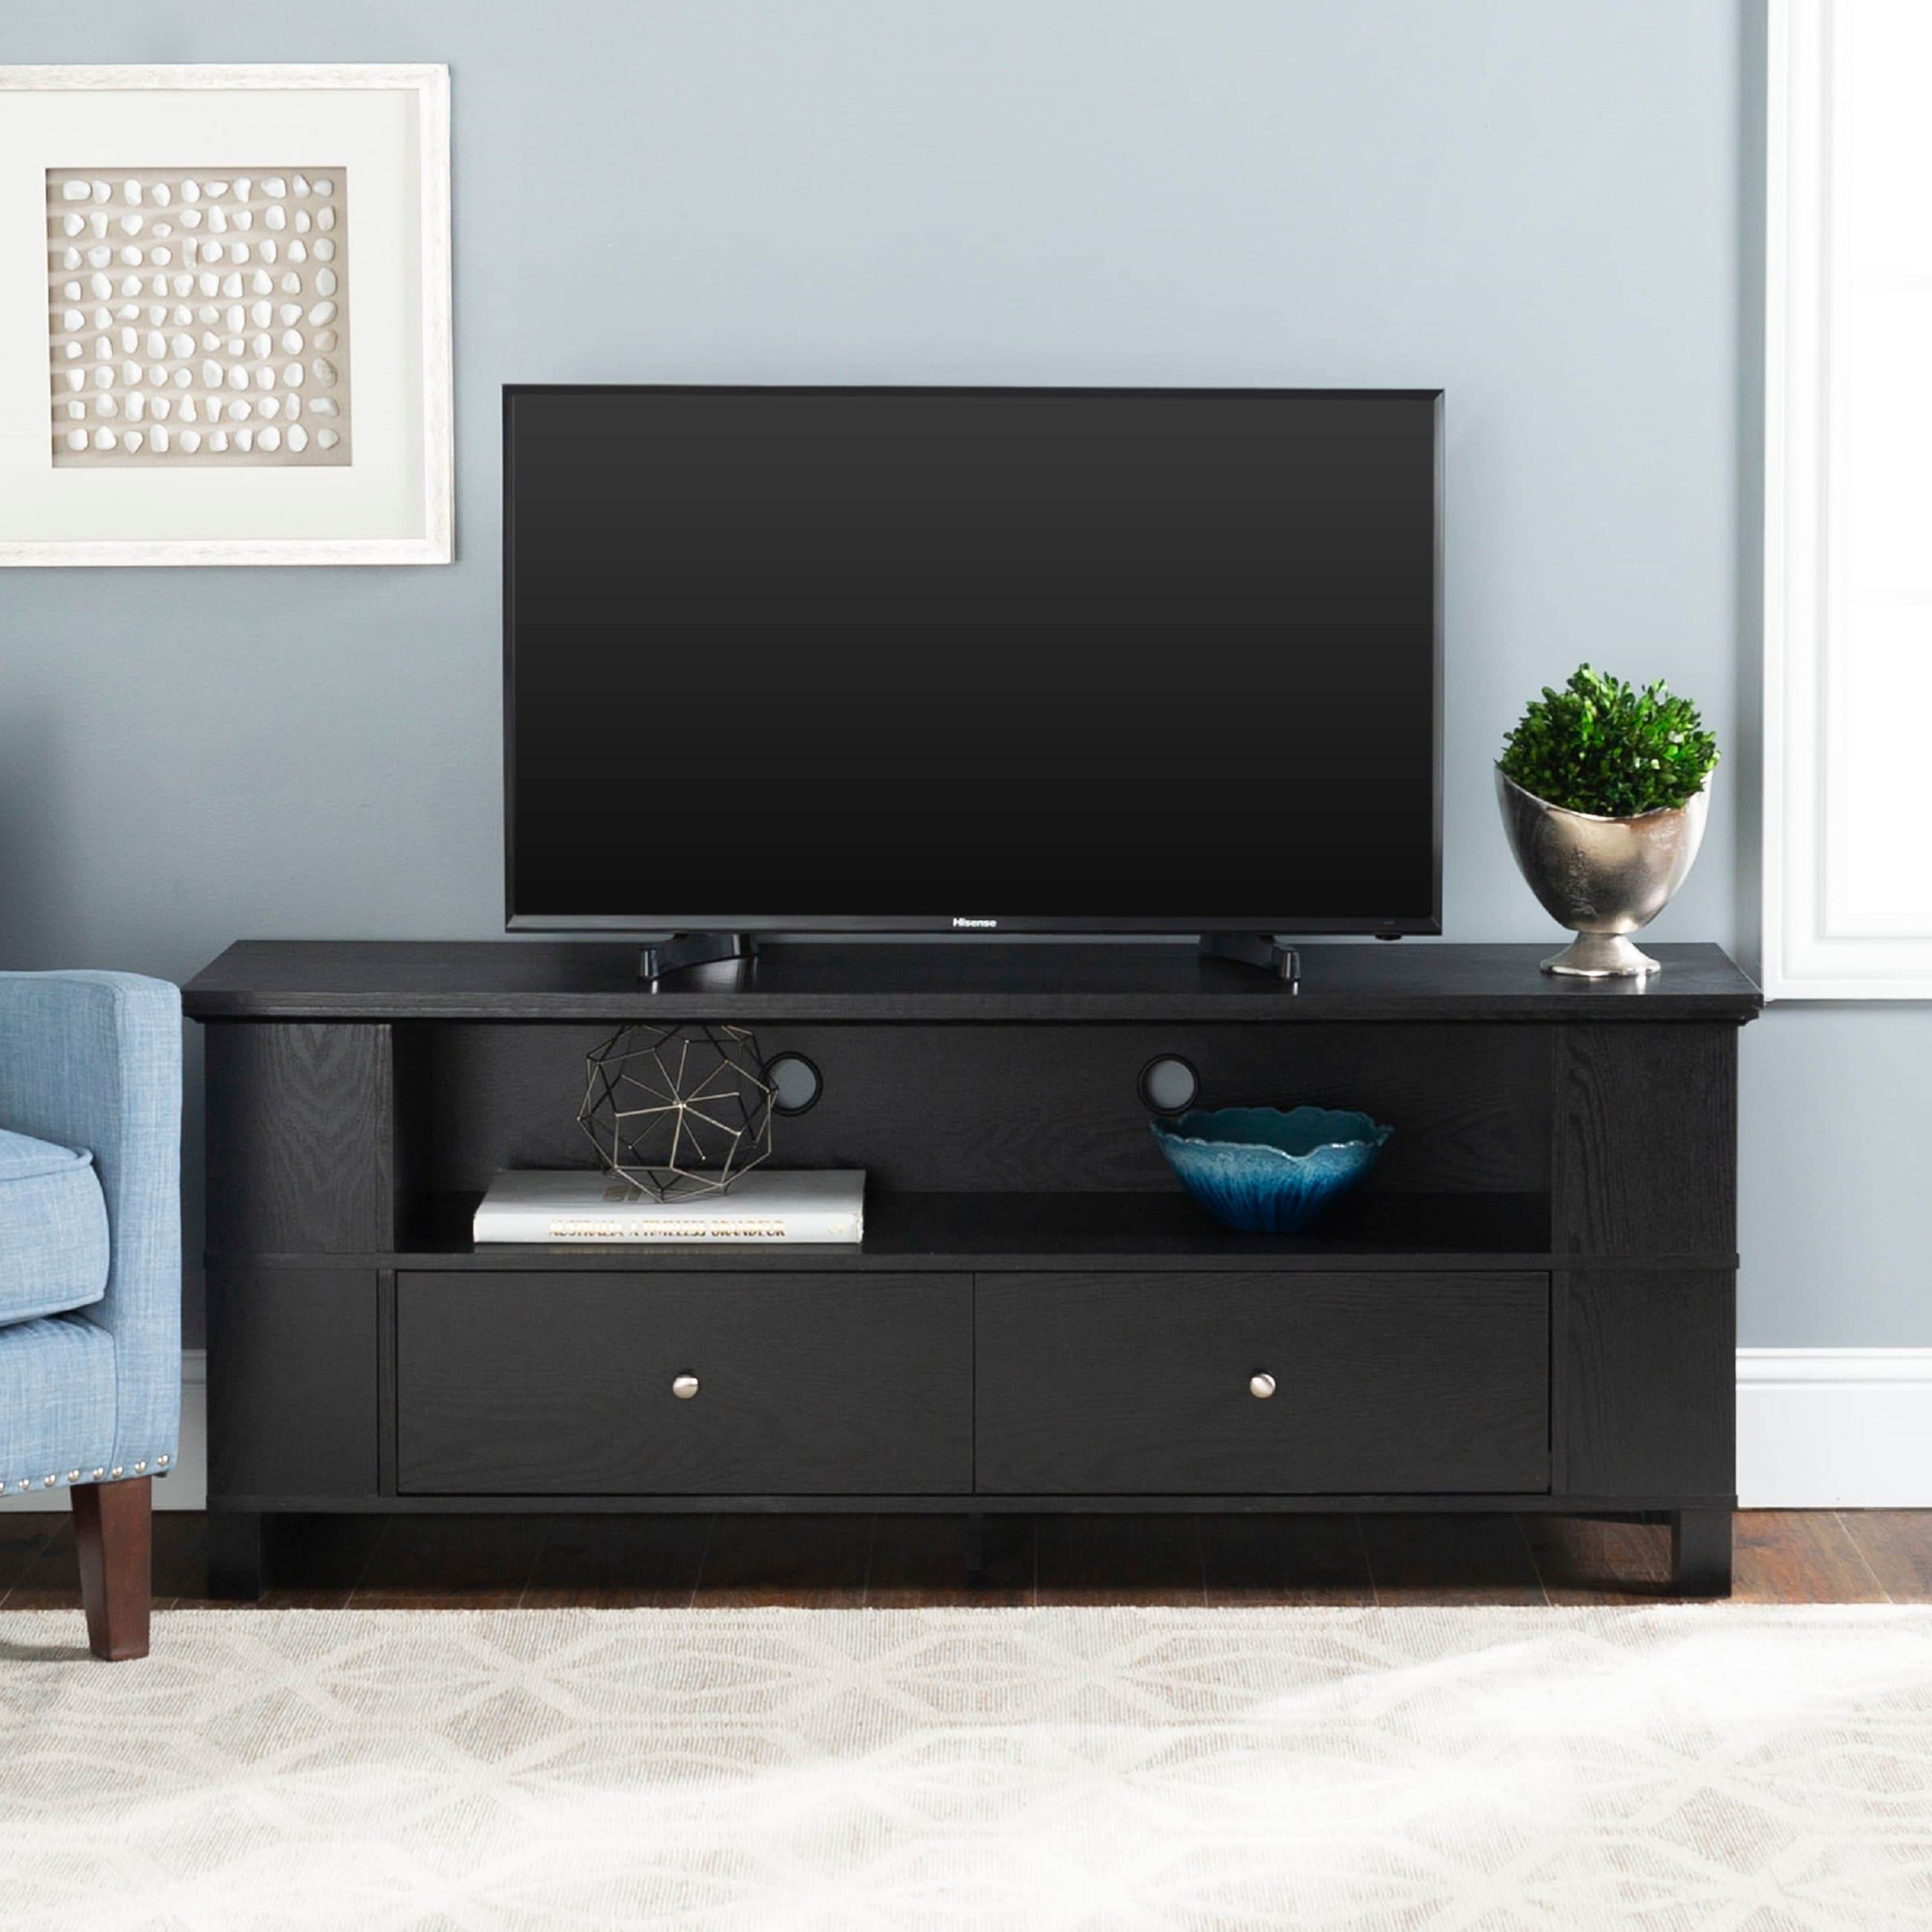 Shop Middlebrook Designs 59 Inch Black Tv Stand Storage Console On Sale Overstock 5584038